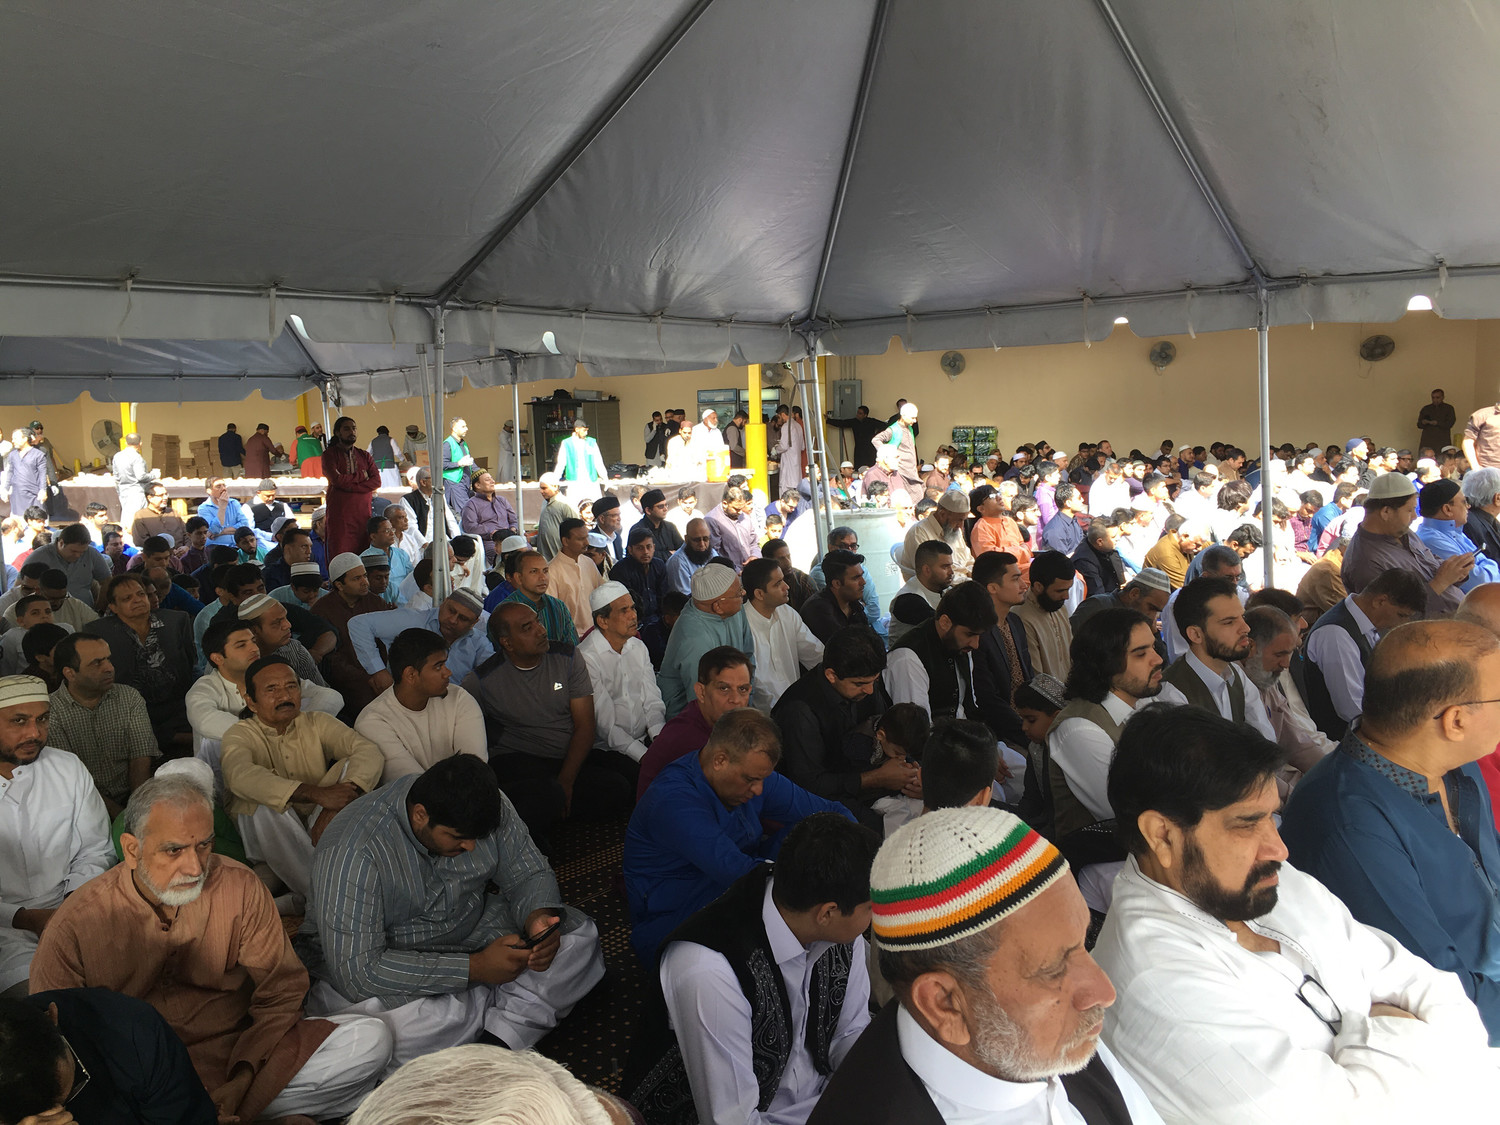 From Mecca to the Hamza Mosque in Valley Stream, Muslims celebrated the end of Ramadan on Eid al-Fitr, June 15.